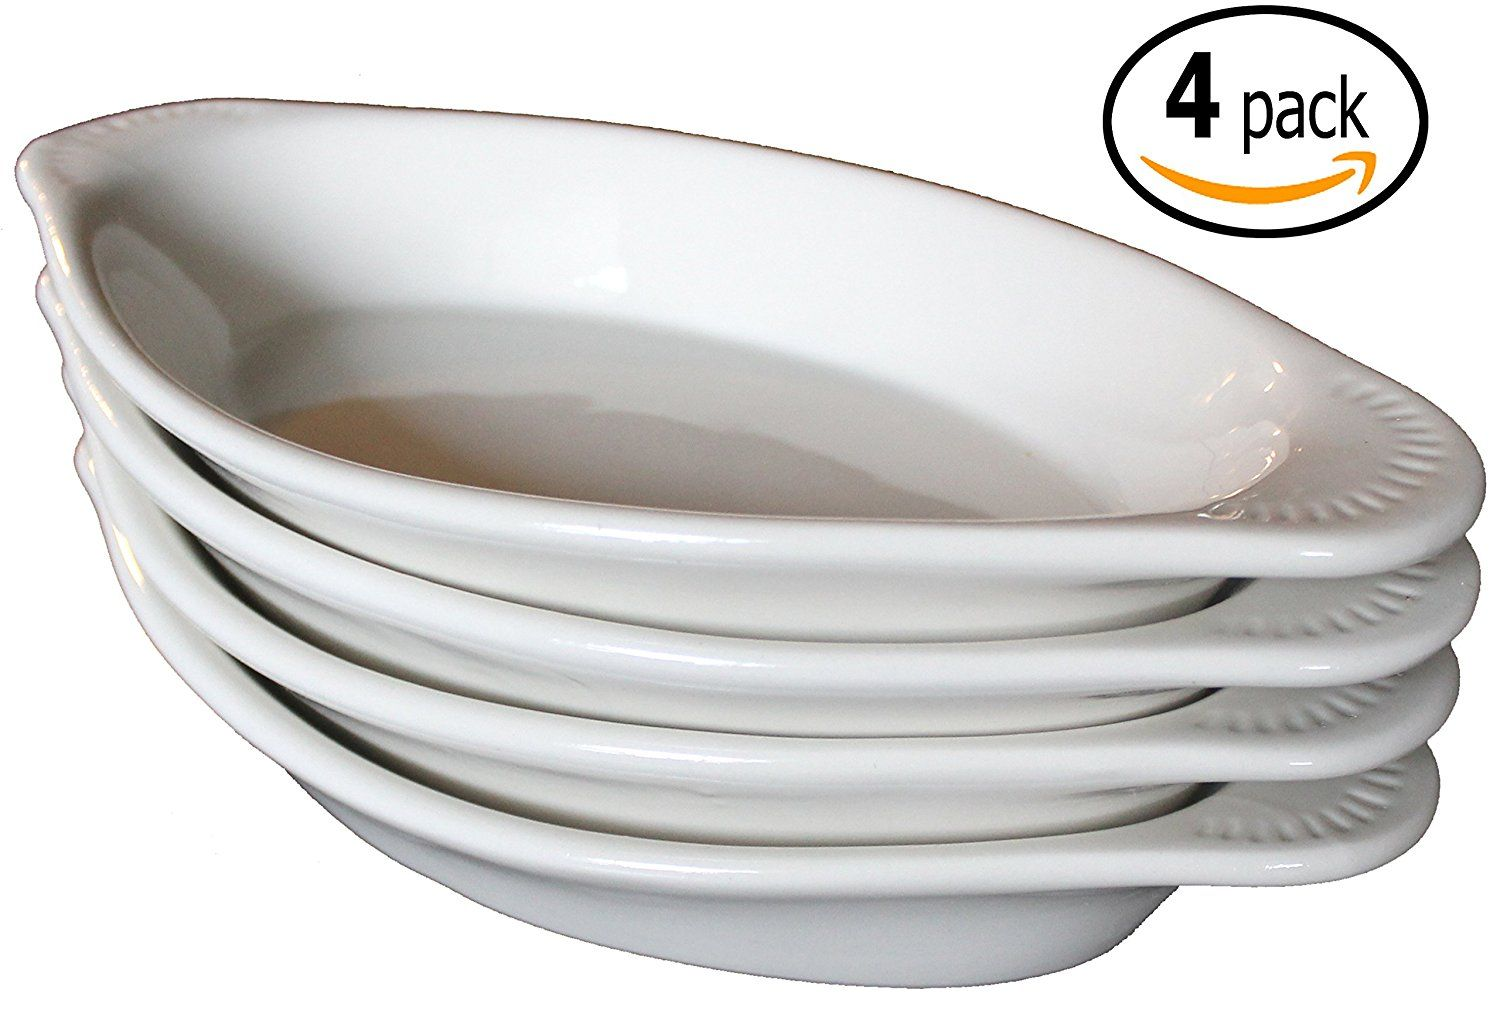 Cac Ceramic Oval Rarebit Au Gratin Baking Dish With Pan Scraper Set Of 4 Bone White 15 Ounce Insider S Special Review T Baked Dishes Au Gratin Baking